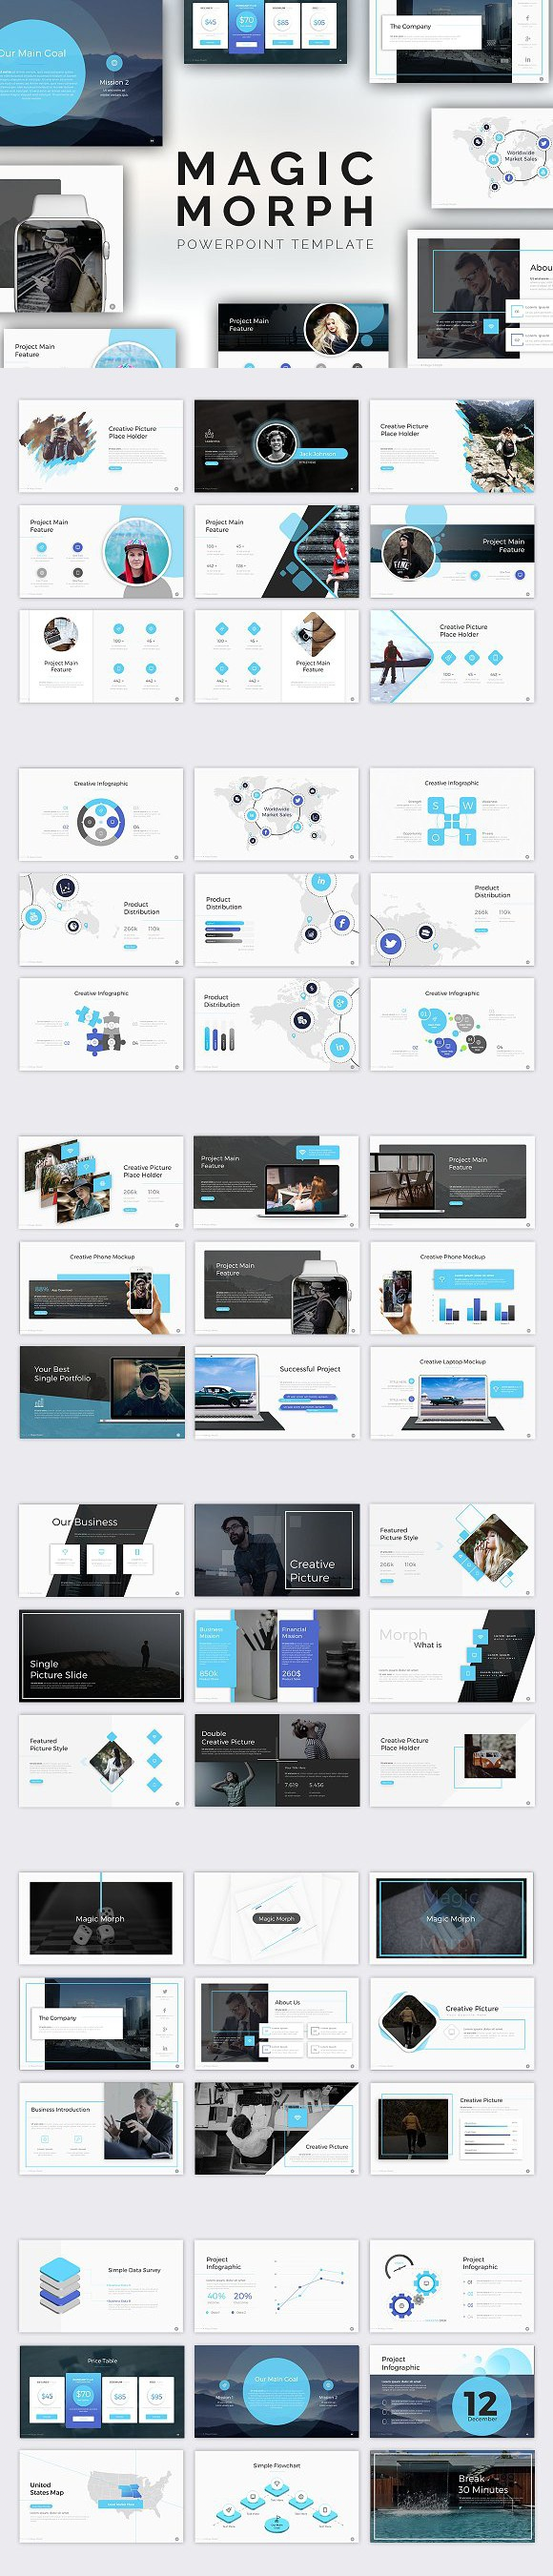 Magic Morph Powerpoint Template Powerpoint Templates  Powerpoint